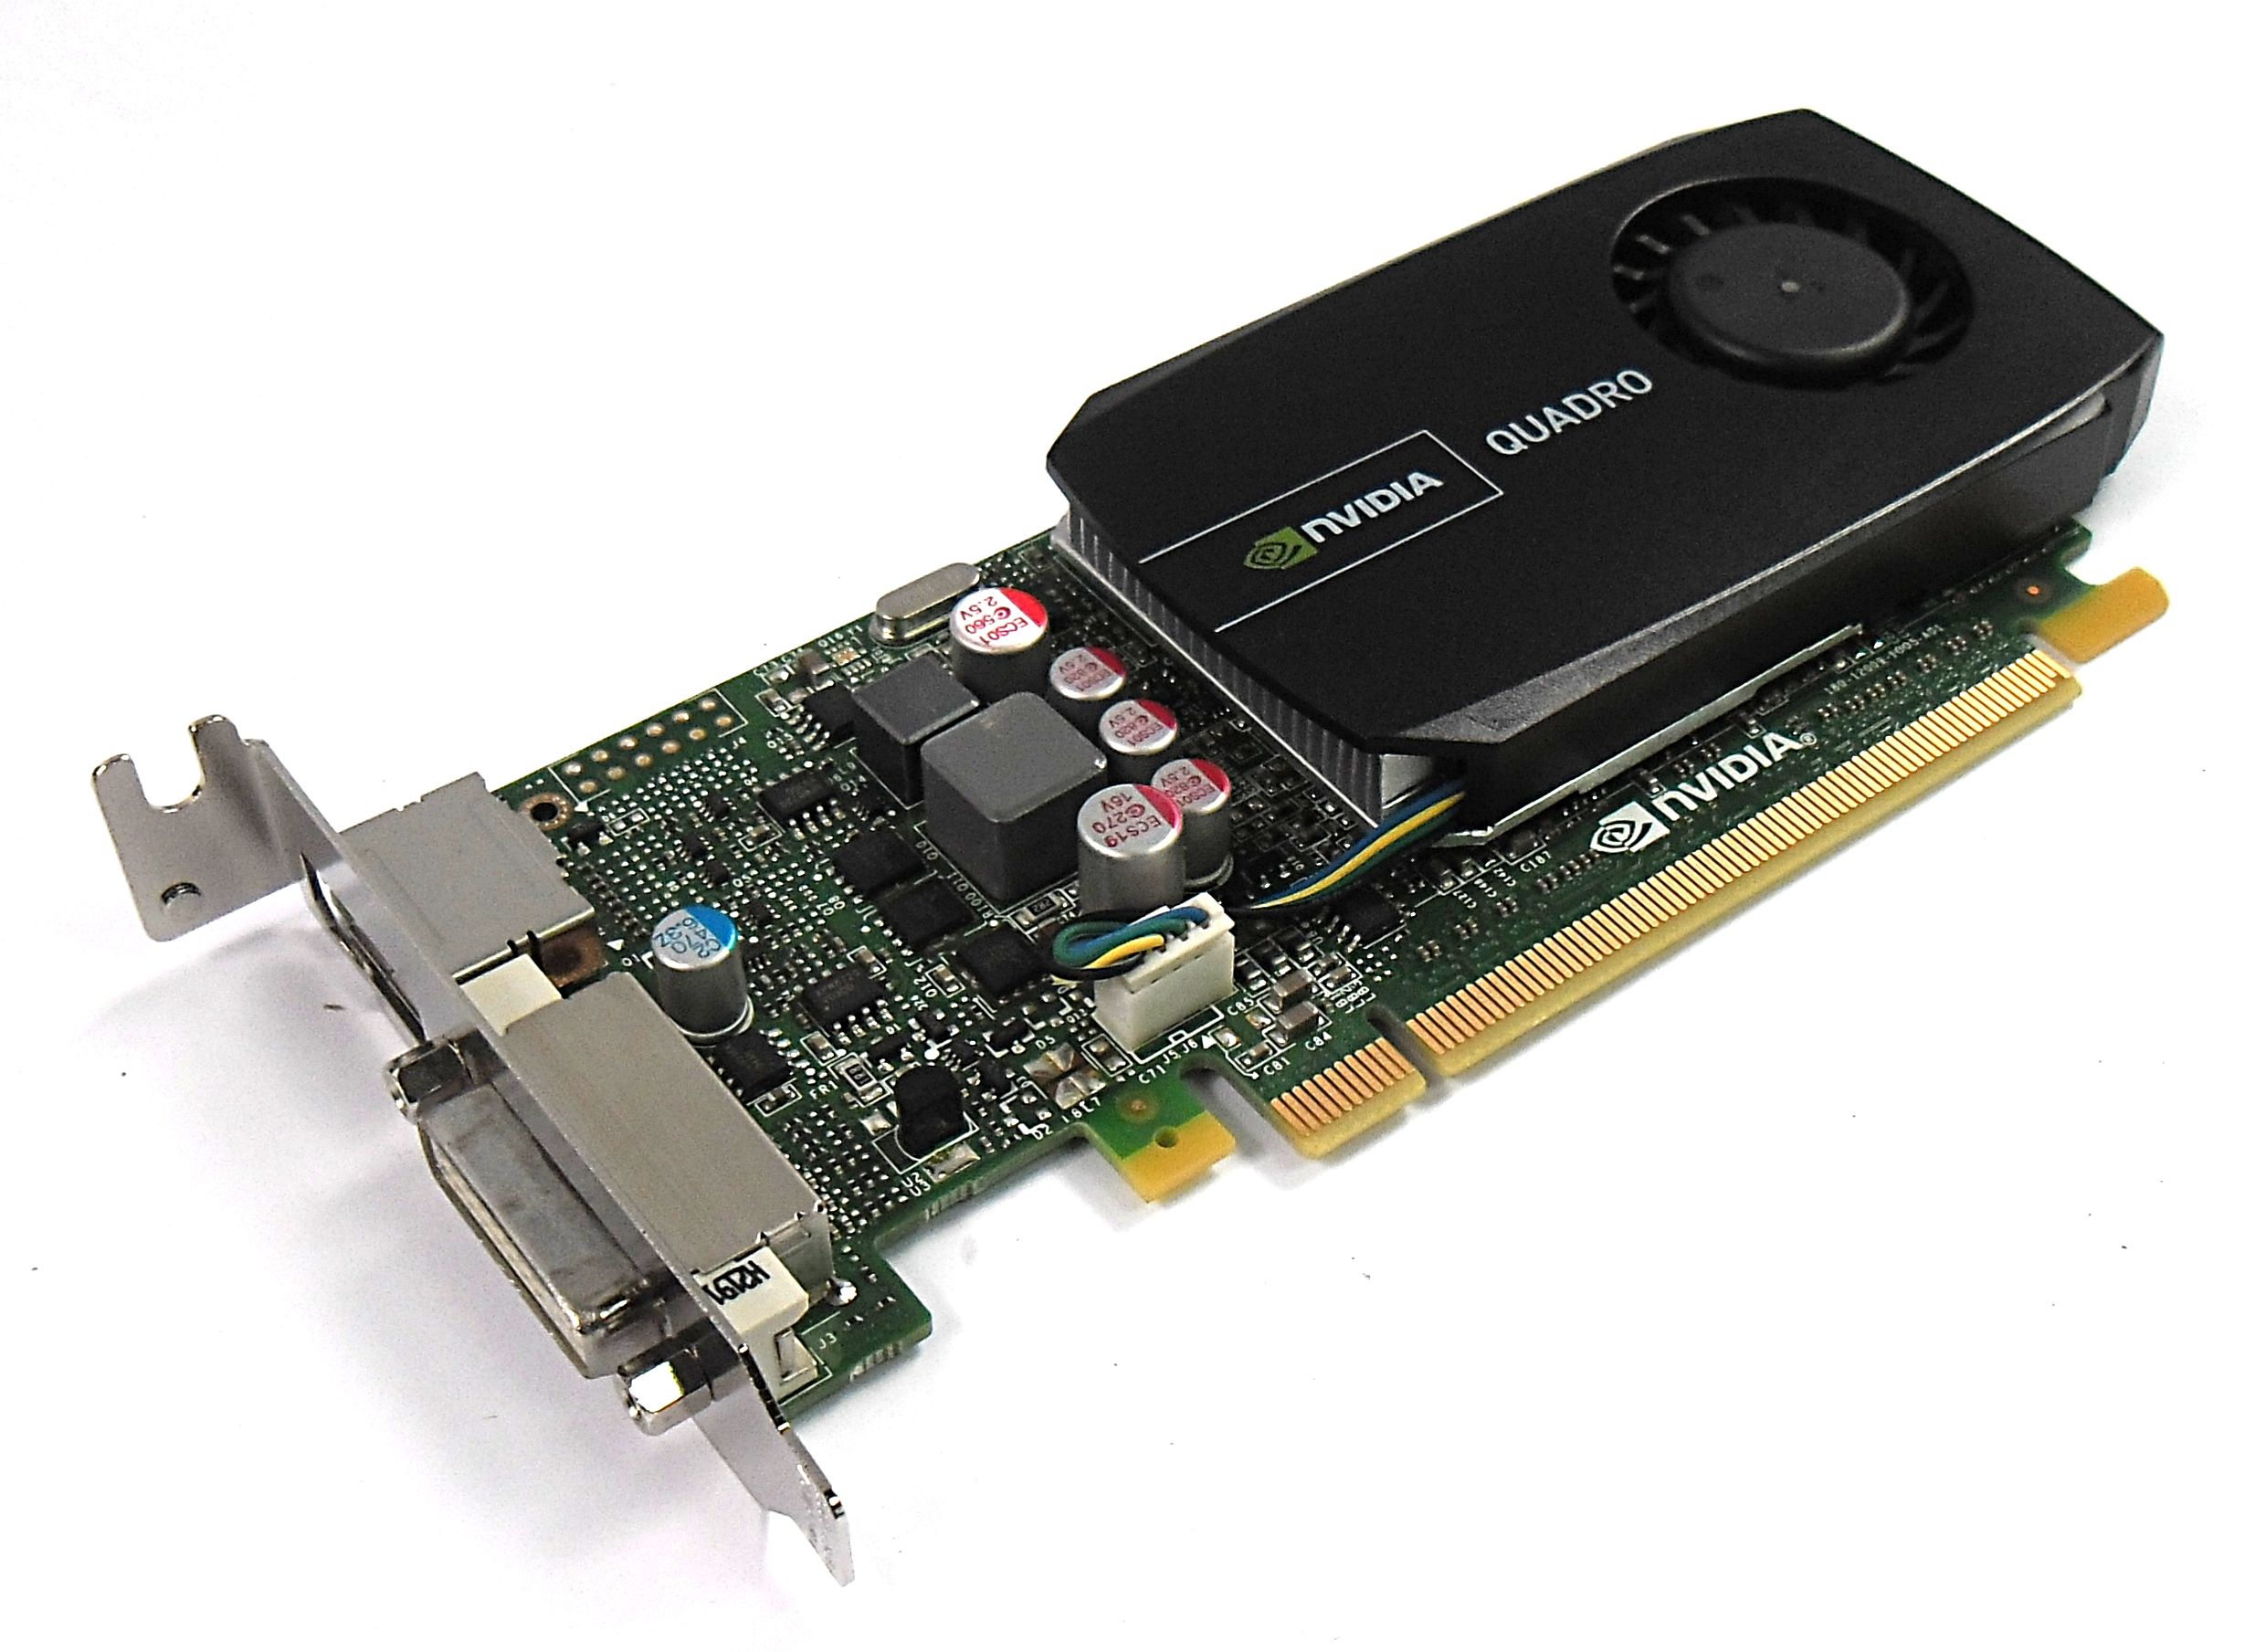 PNY VCQ600ATXV2-T Quadro 600 1GB DDR3 PCIe LP DVI-I/ Display Port Graphics Card